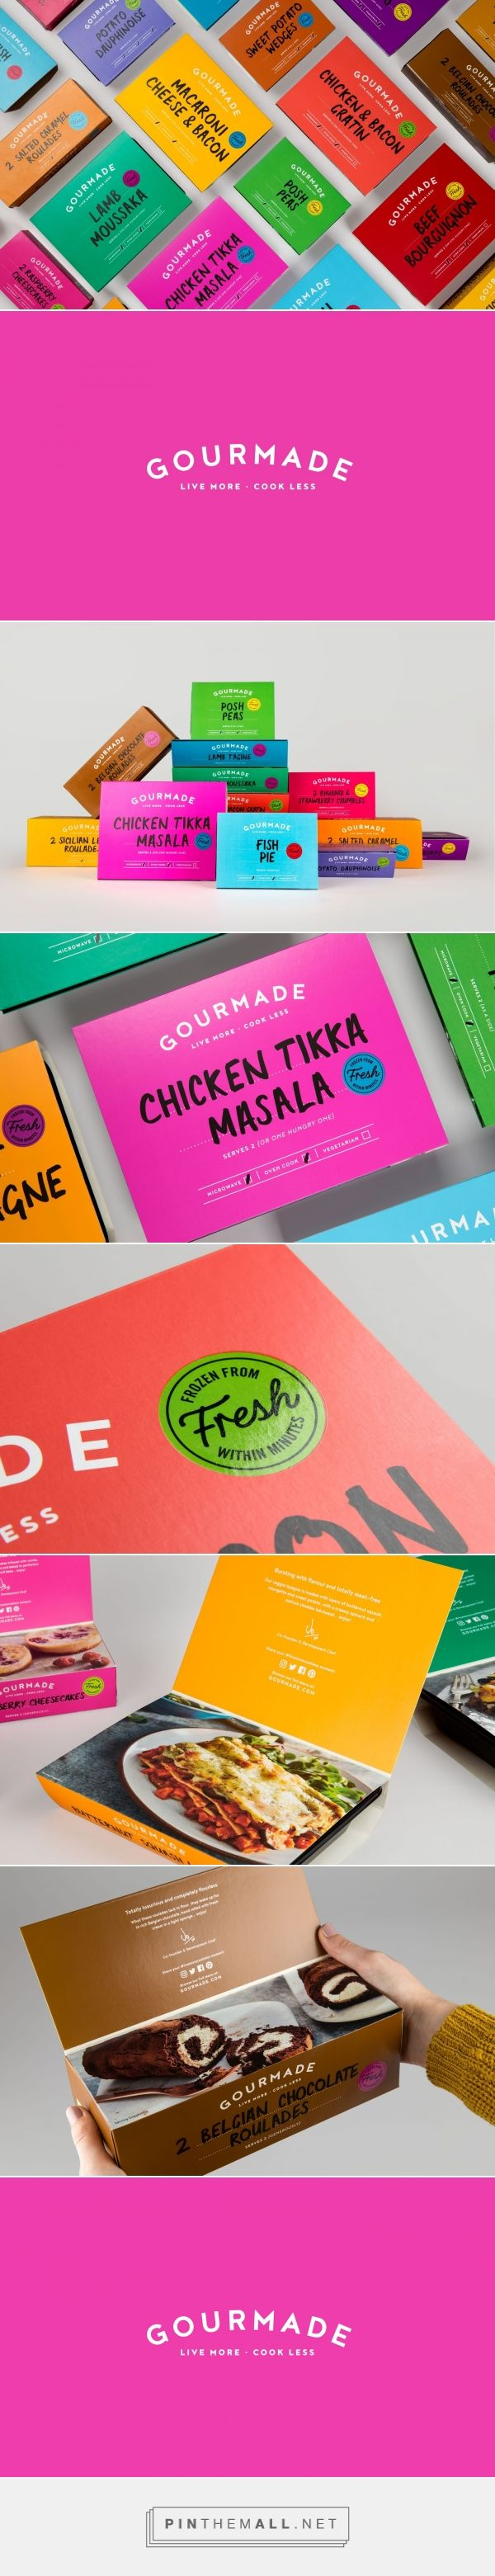 Gourmade frozen food packaging design by Robot Food - http://www.packagingoftheworld.com/2018/02/gourmade.html